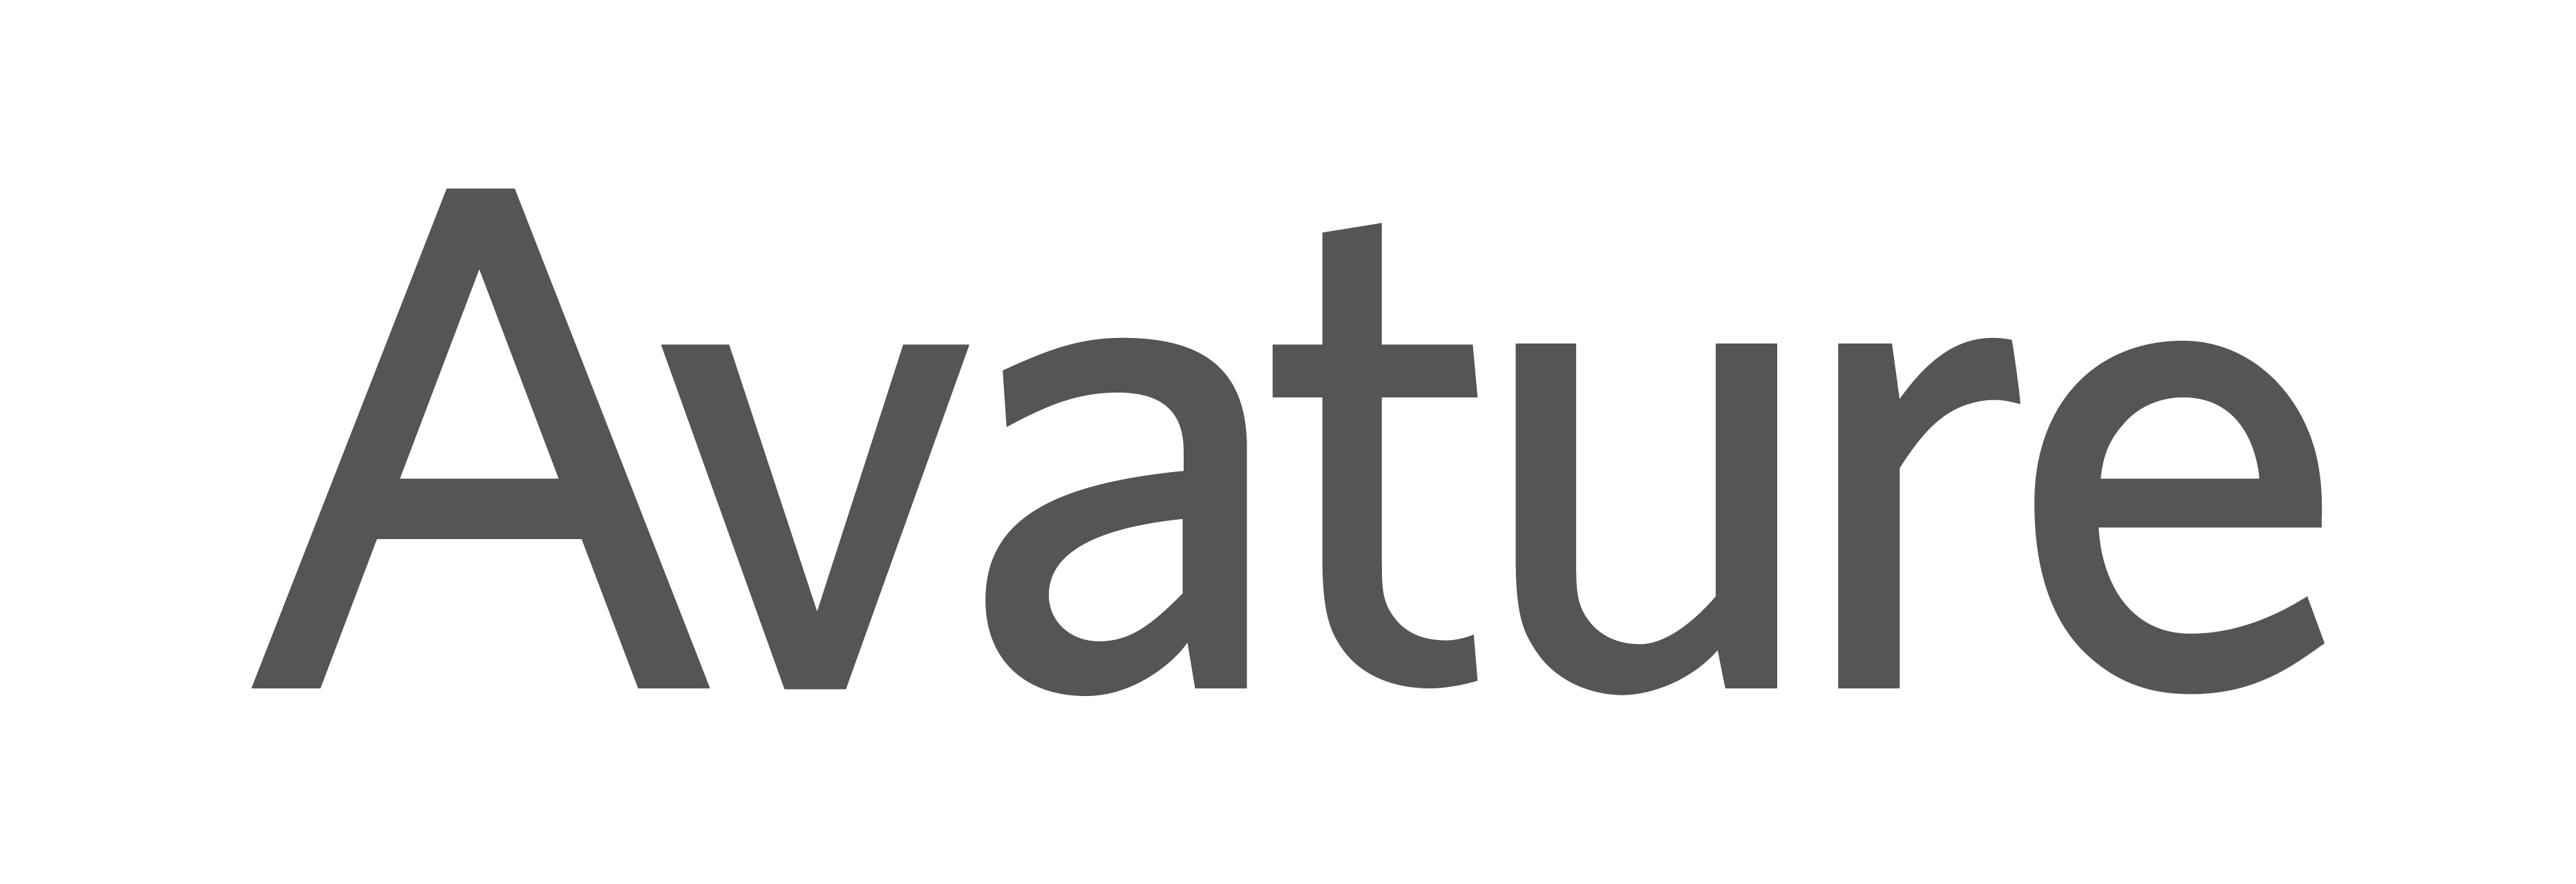 Avature-Logo-High-Res-01